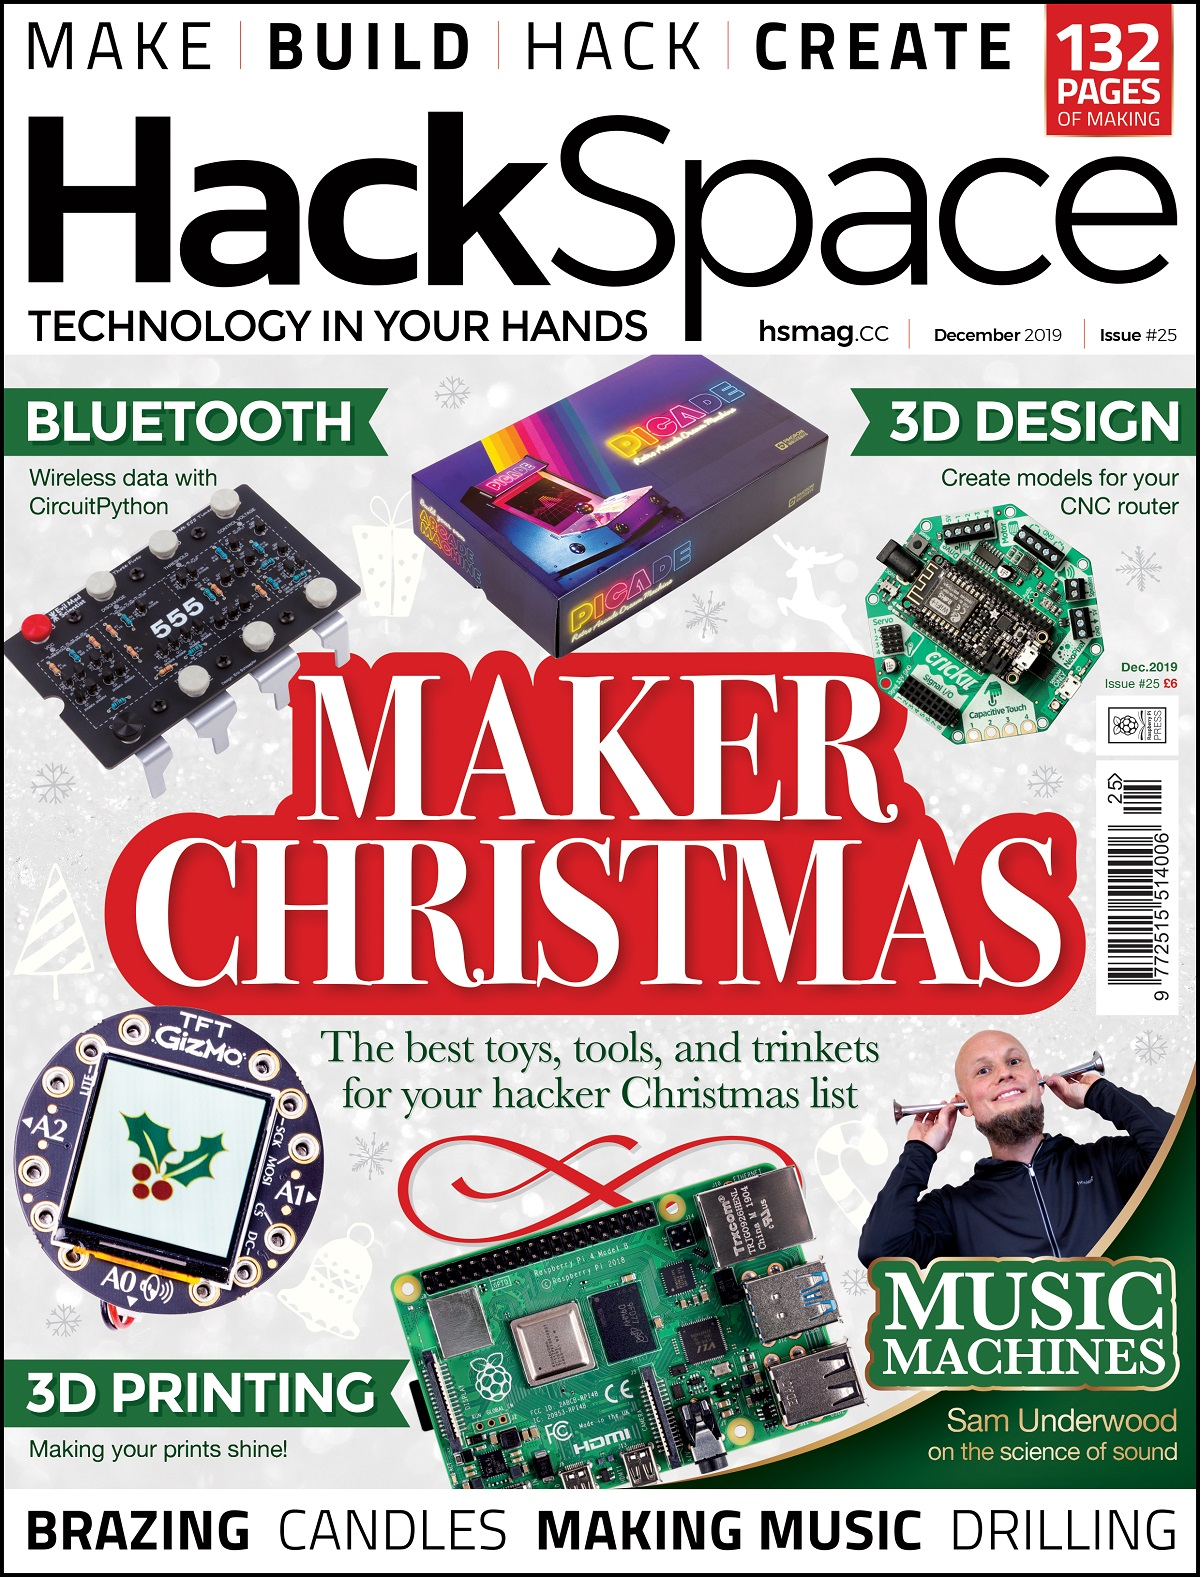 HackSpace magazine issue 25 cover